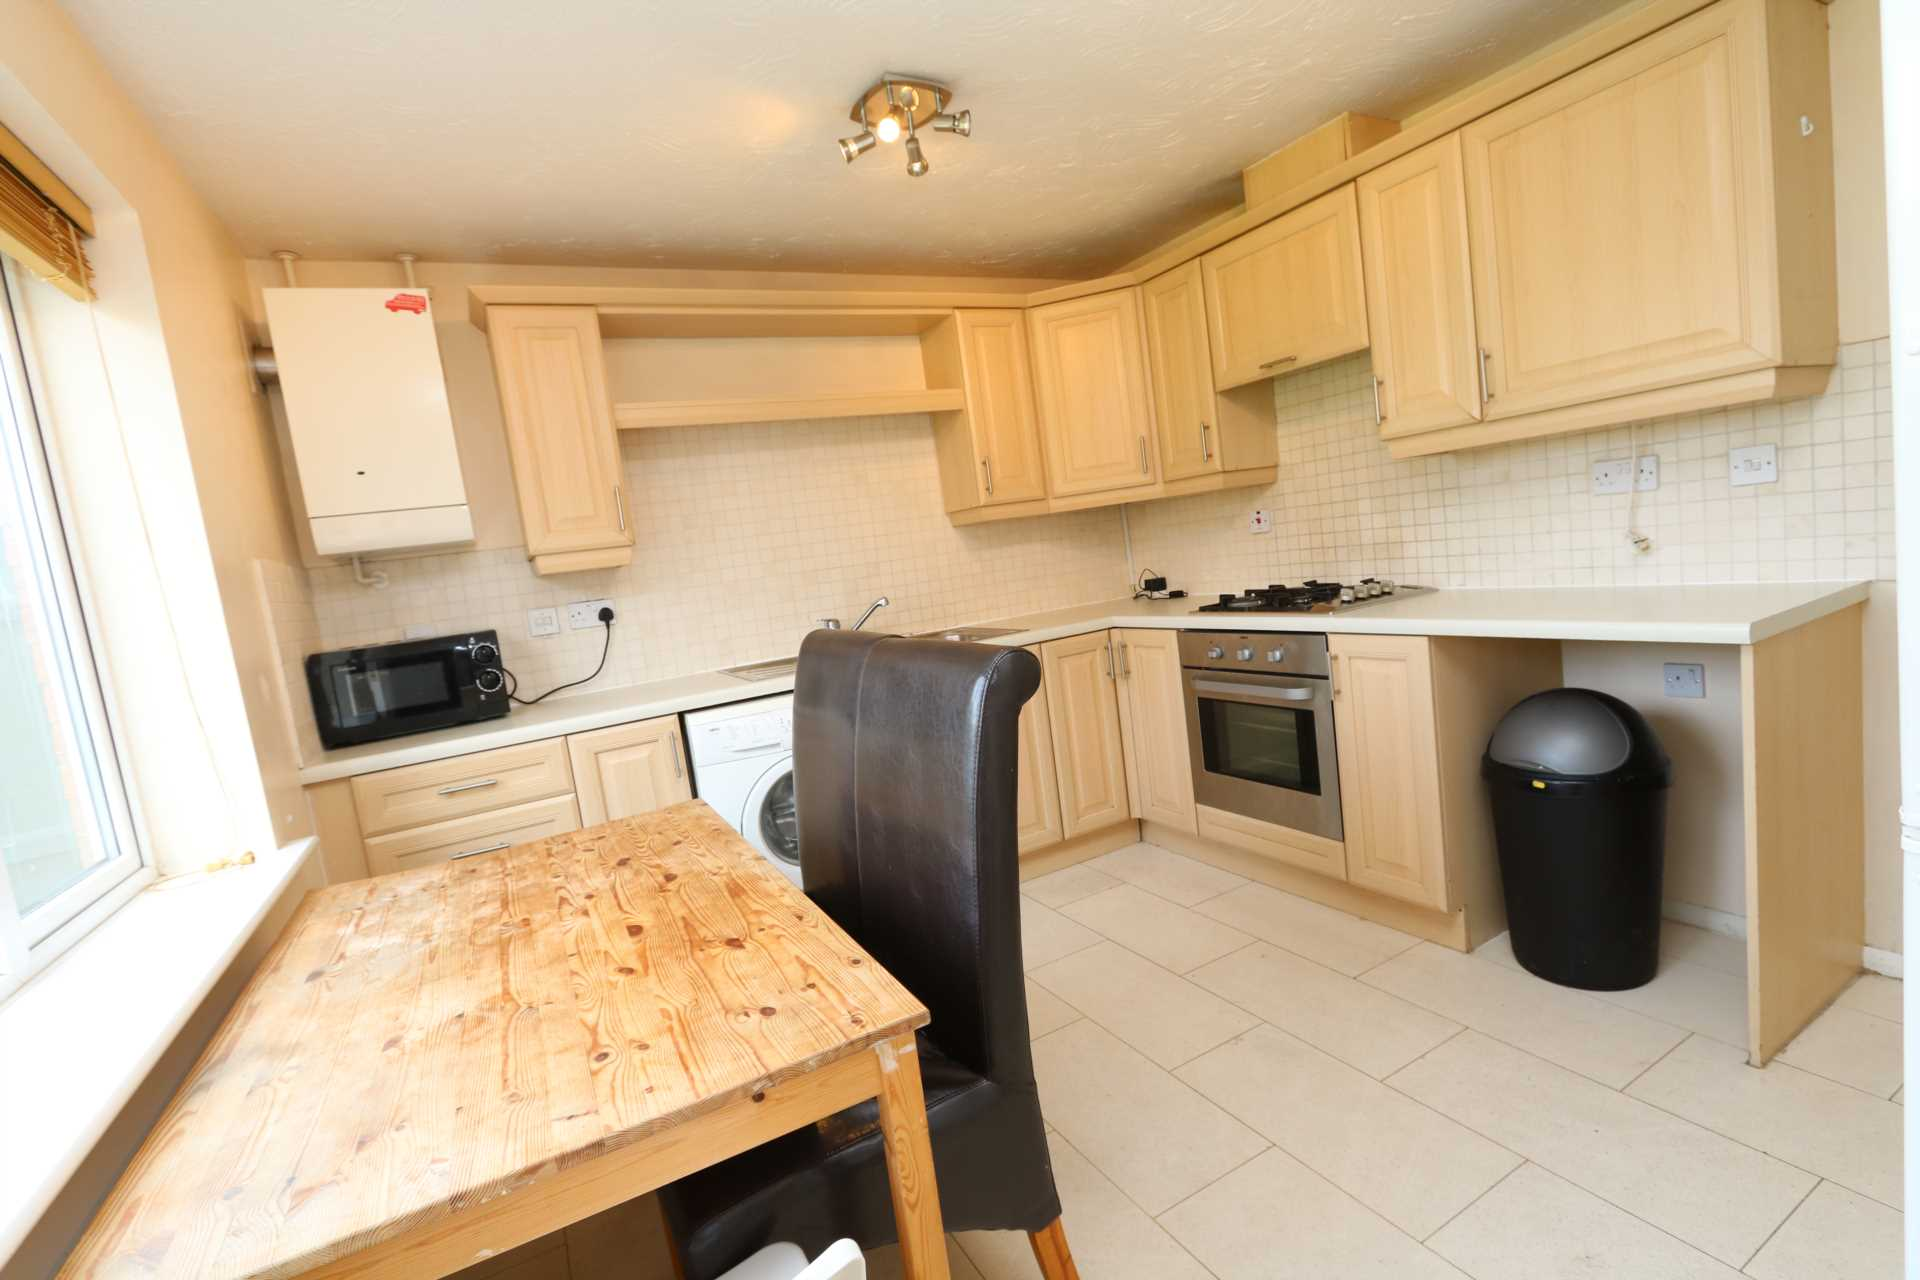 Perchfoot Close - 3 bedroom student home fully furnished, WIFI & bills included - NO FEES, Image 1